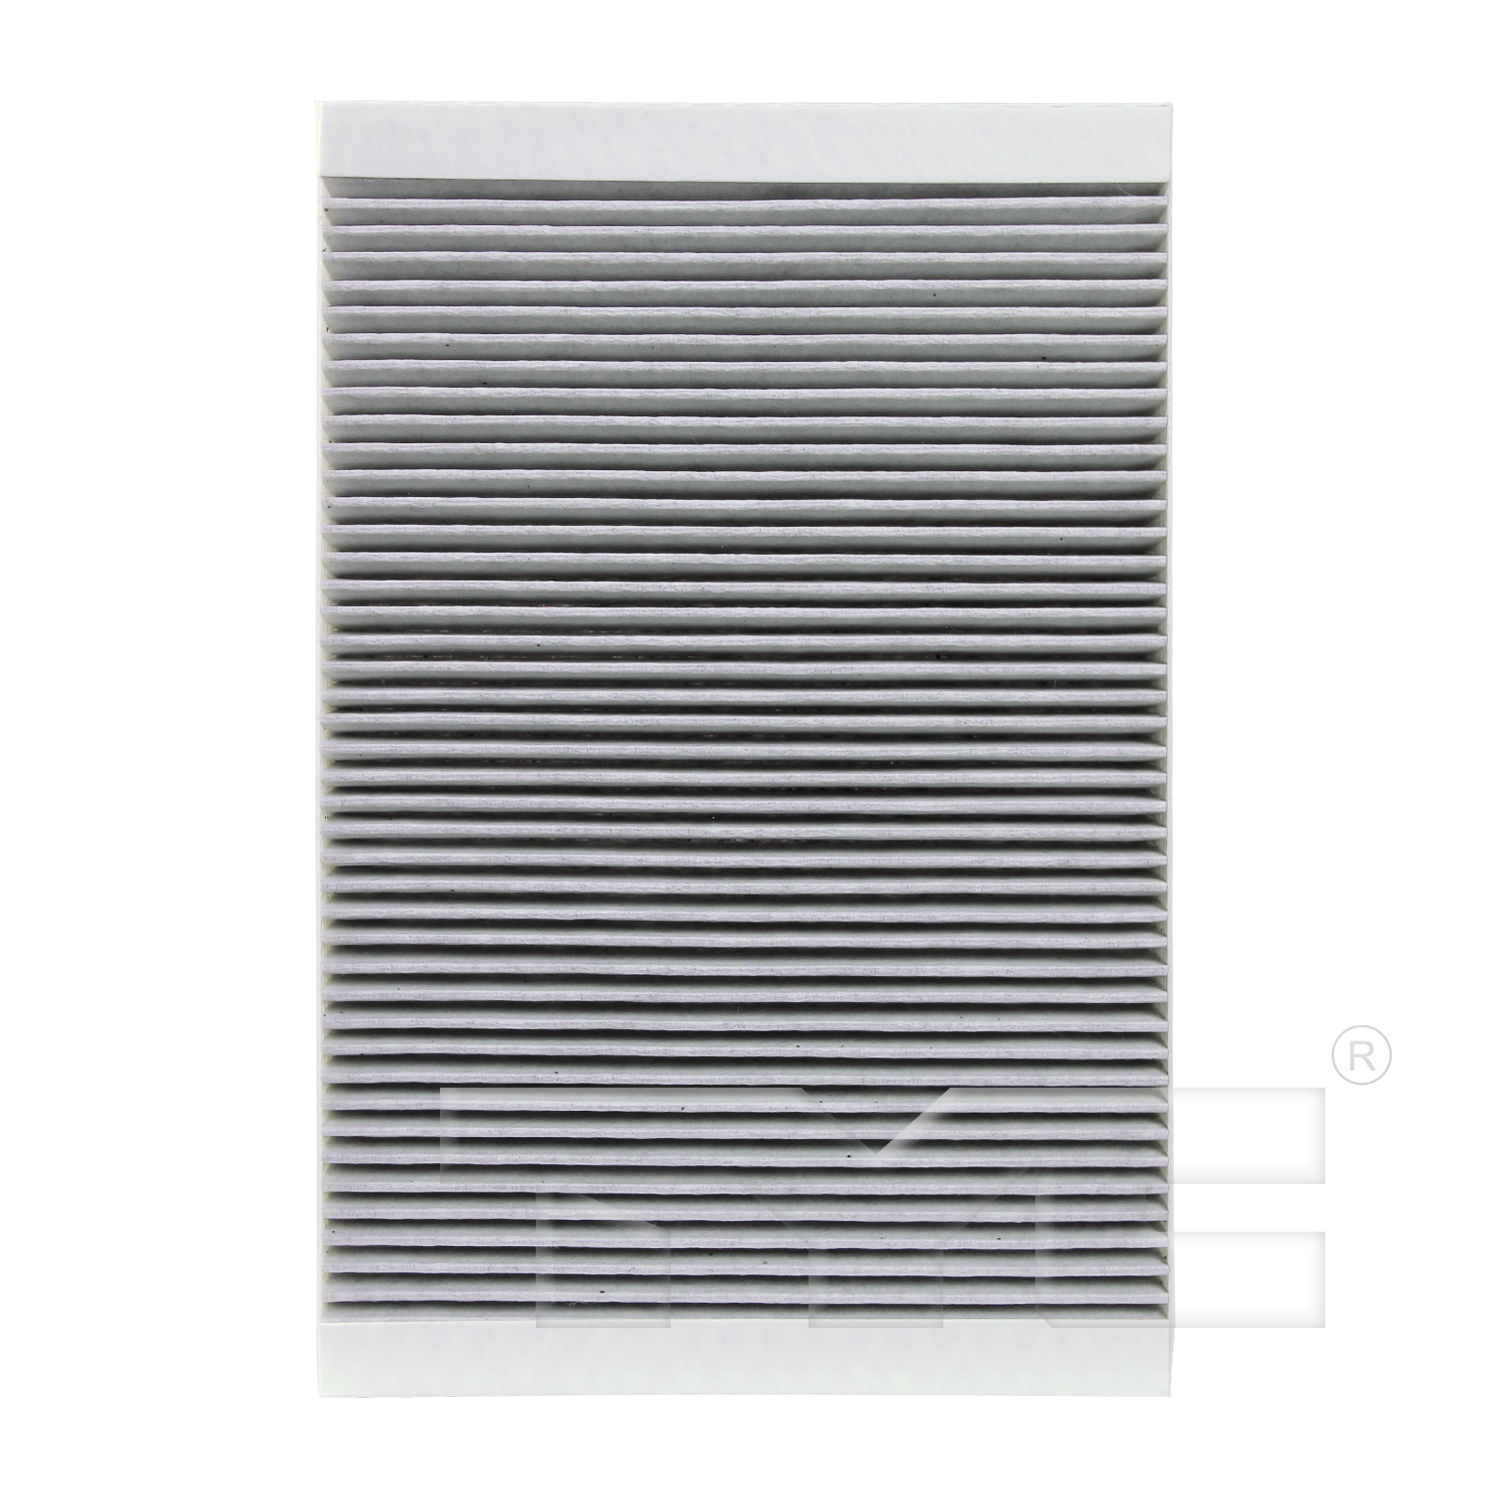 2006-2017 Mercedes Sprinter Sprinter Van Carbon A//C Cabin Air Filter